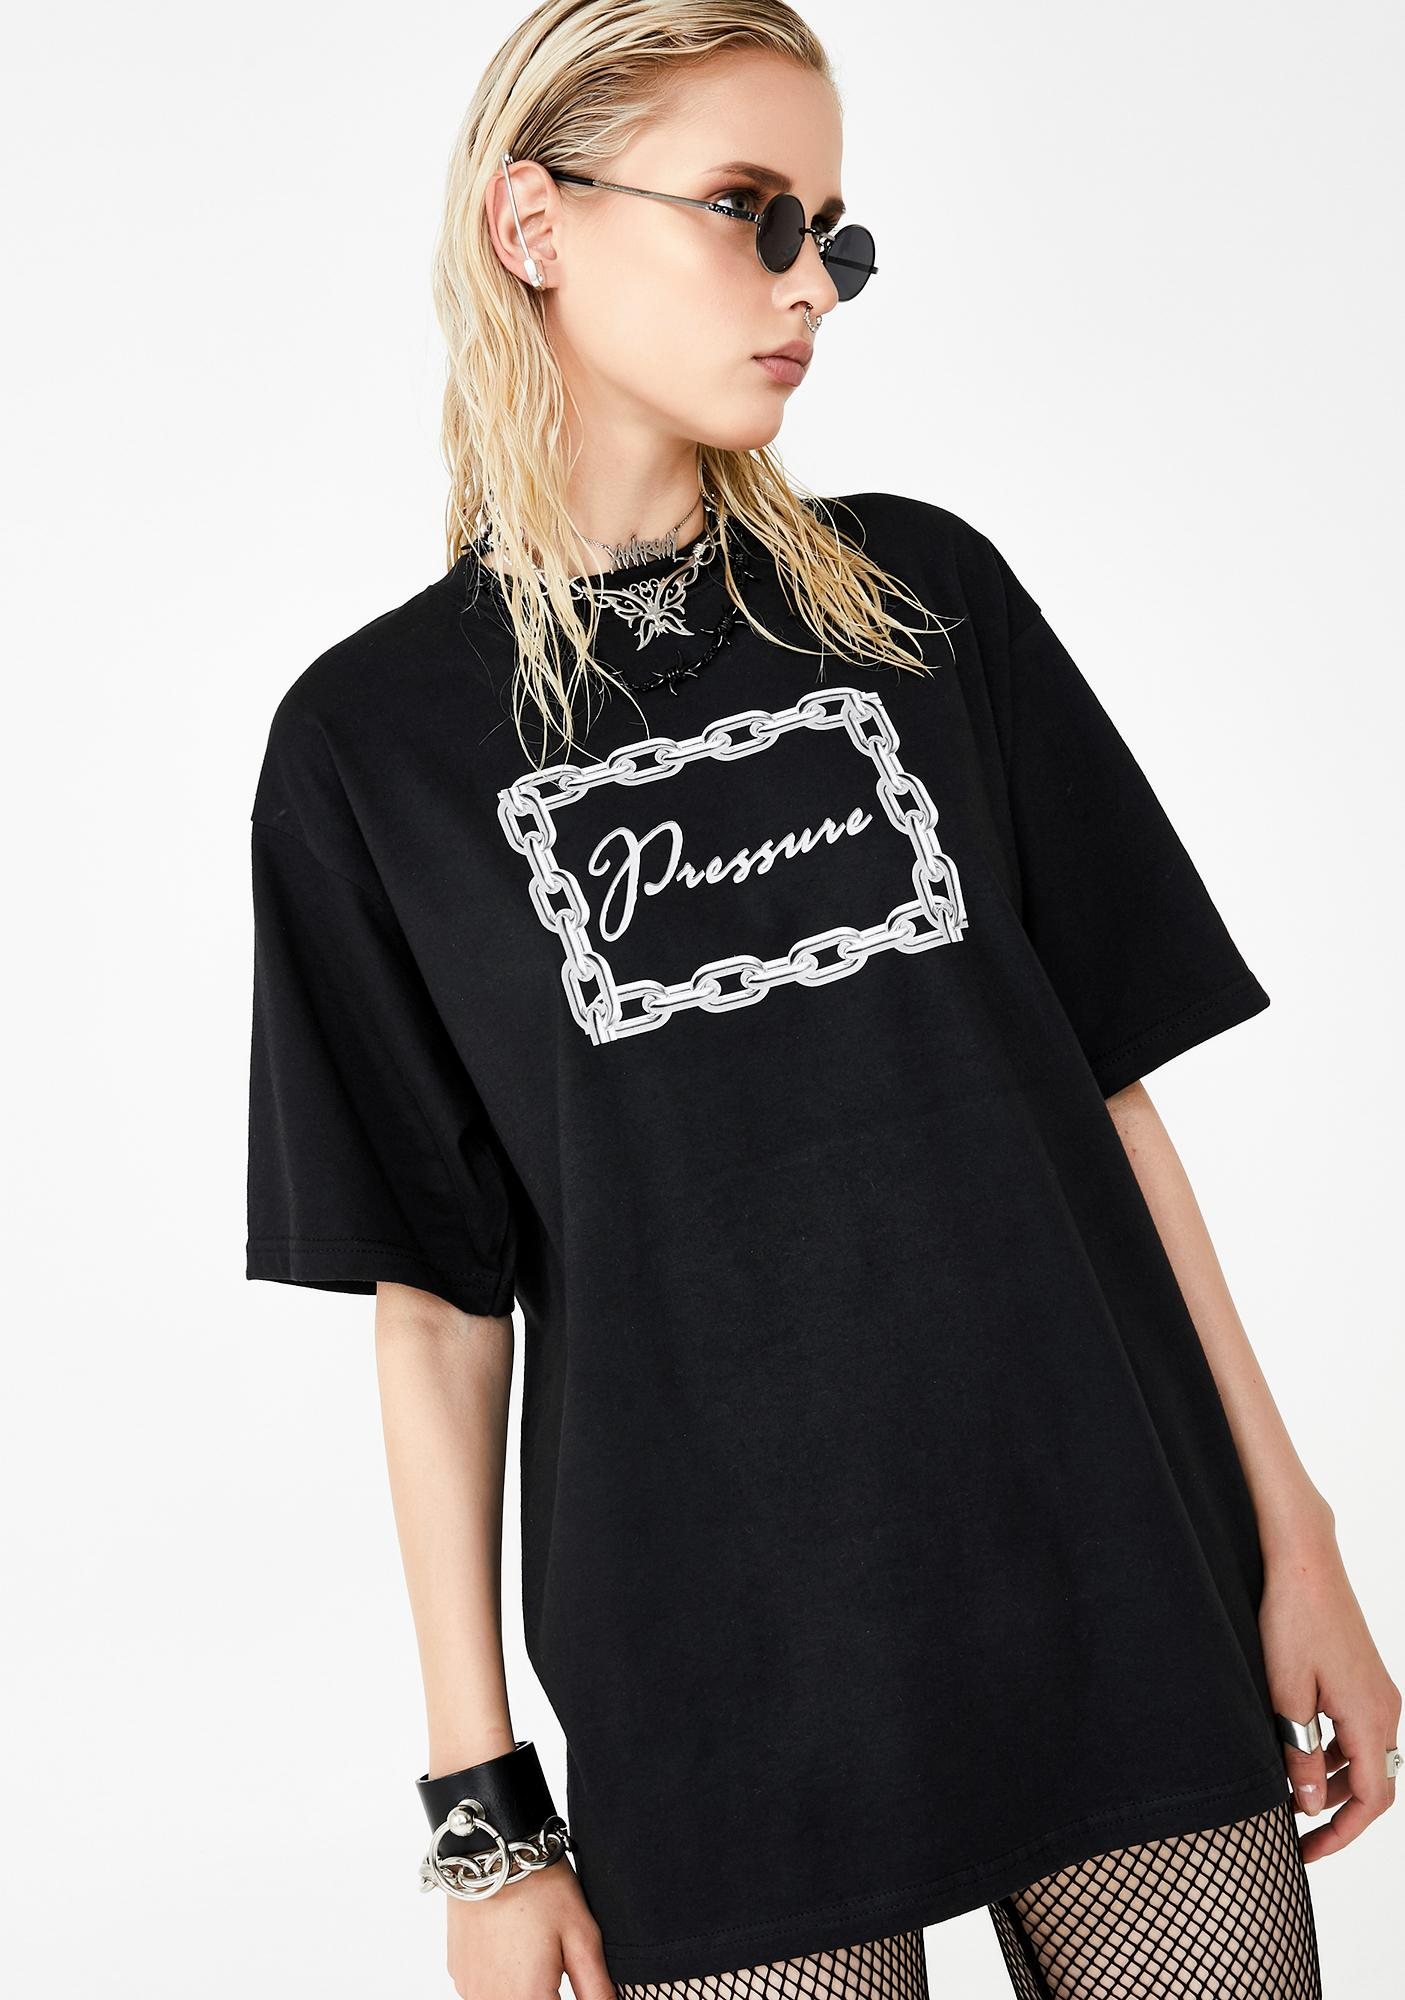 Pressure Clothes Chain Graphic Tee